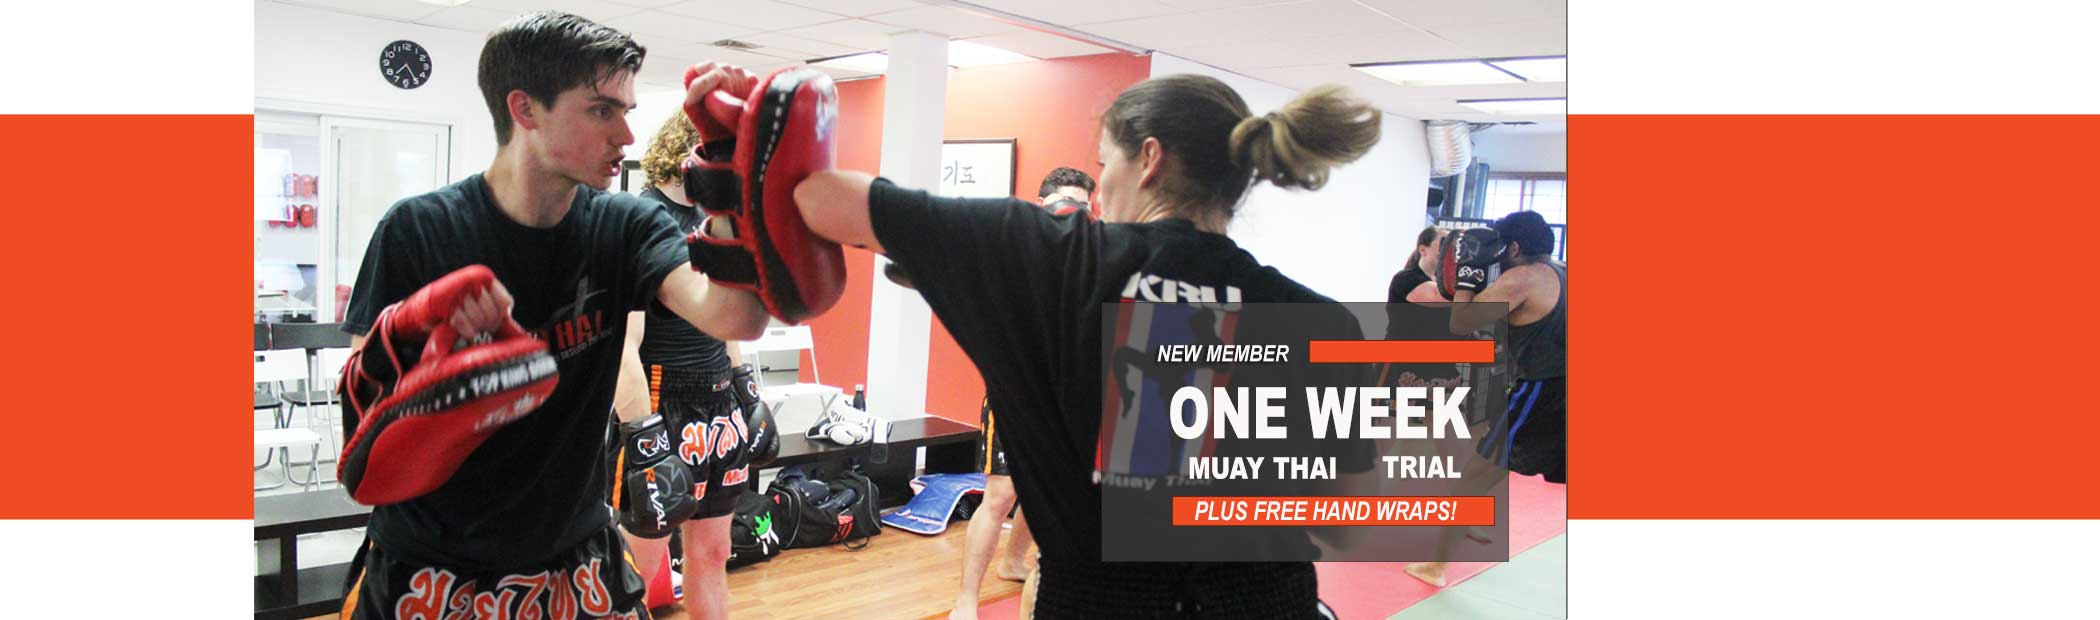 muay thai bayview